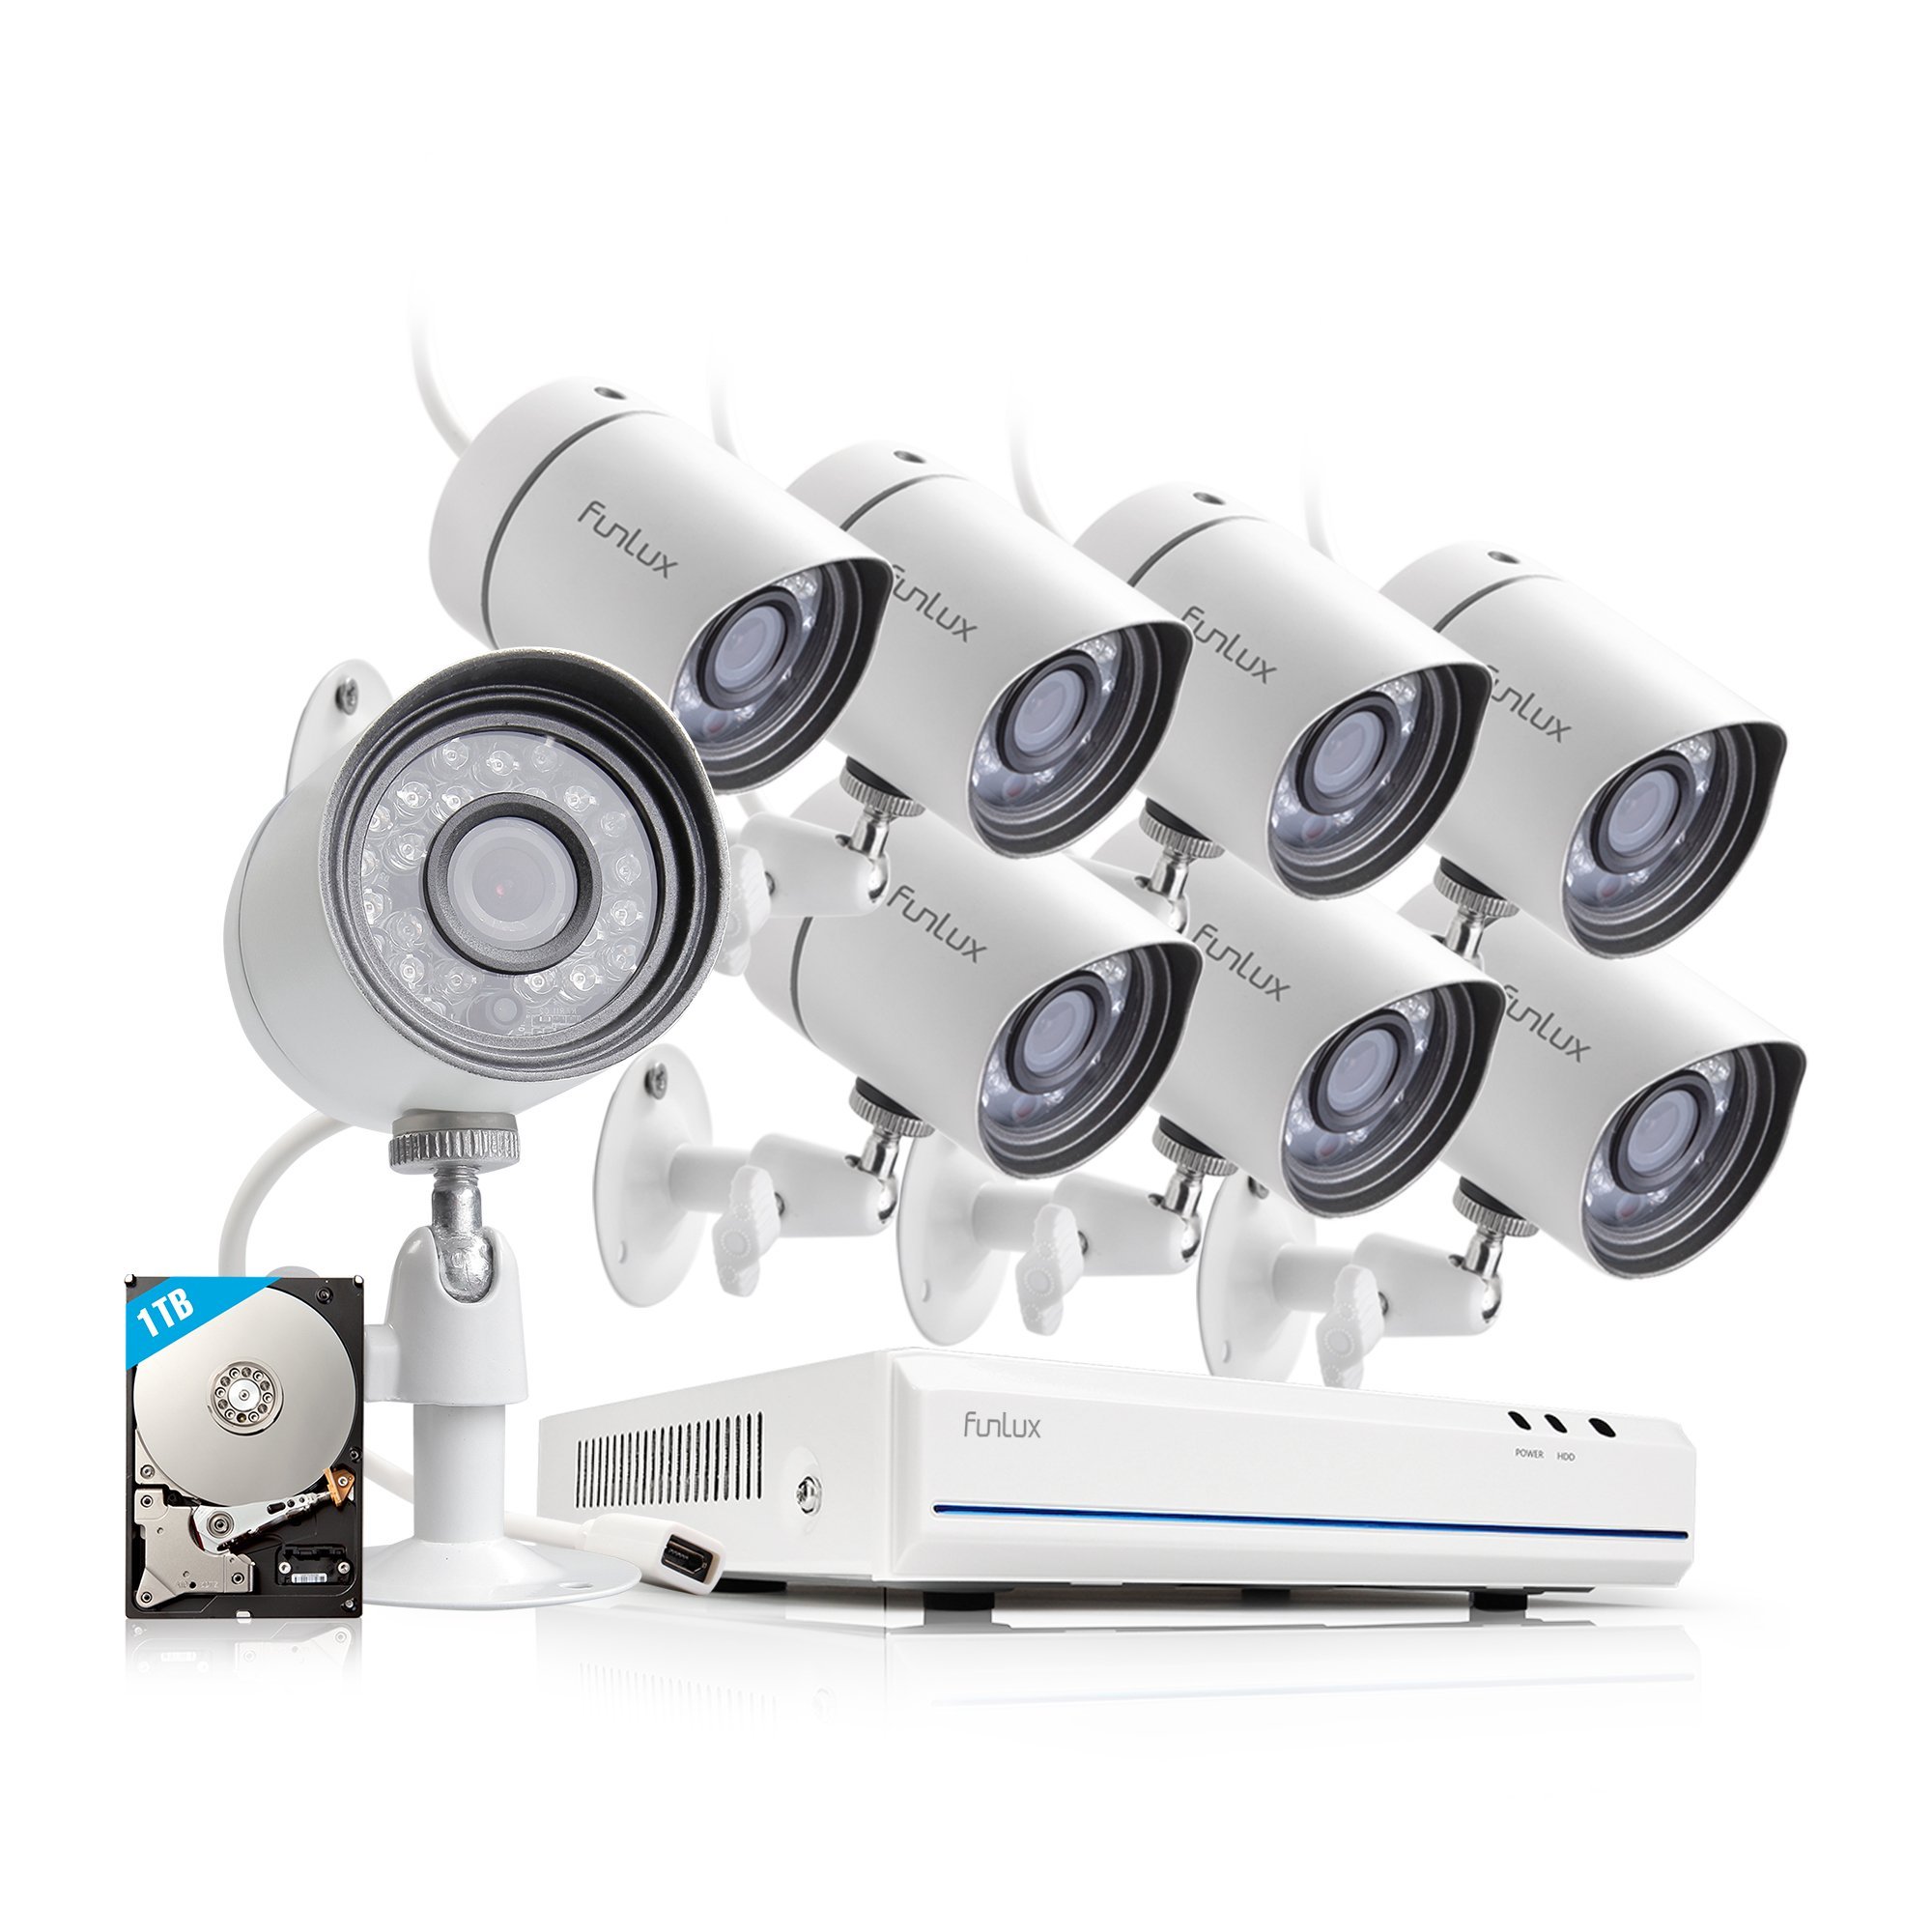 Funlux 8 Channel Full HD HDMI NVR Simplified PoE 8 720p Outdoor Indoor Security Camera System 1TB Hard Drive